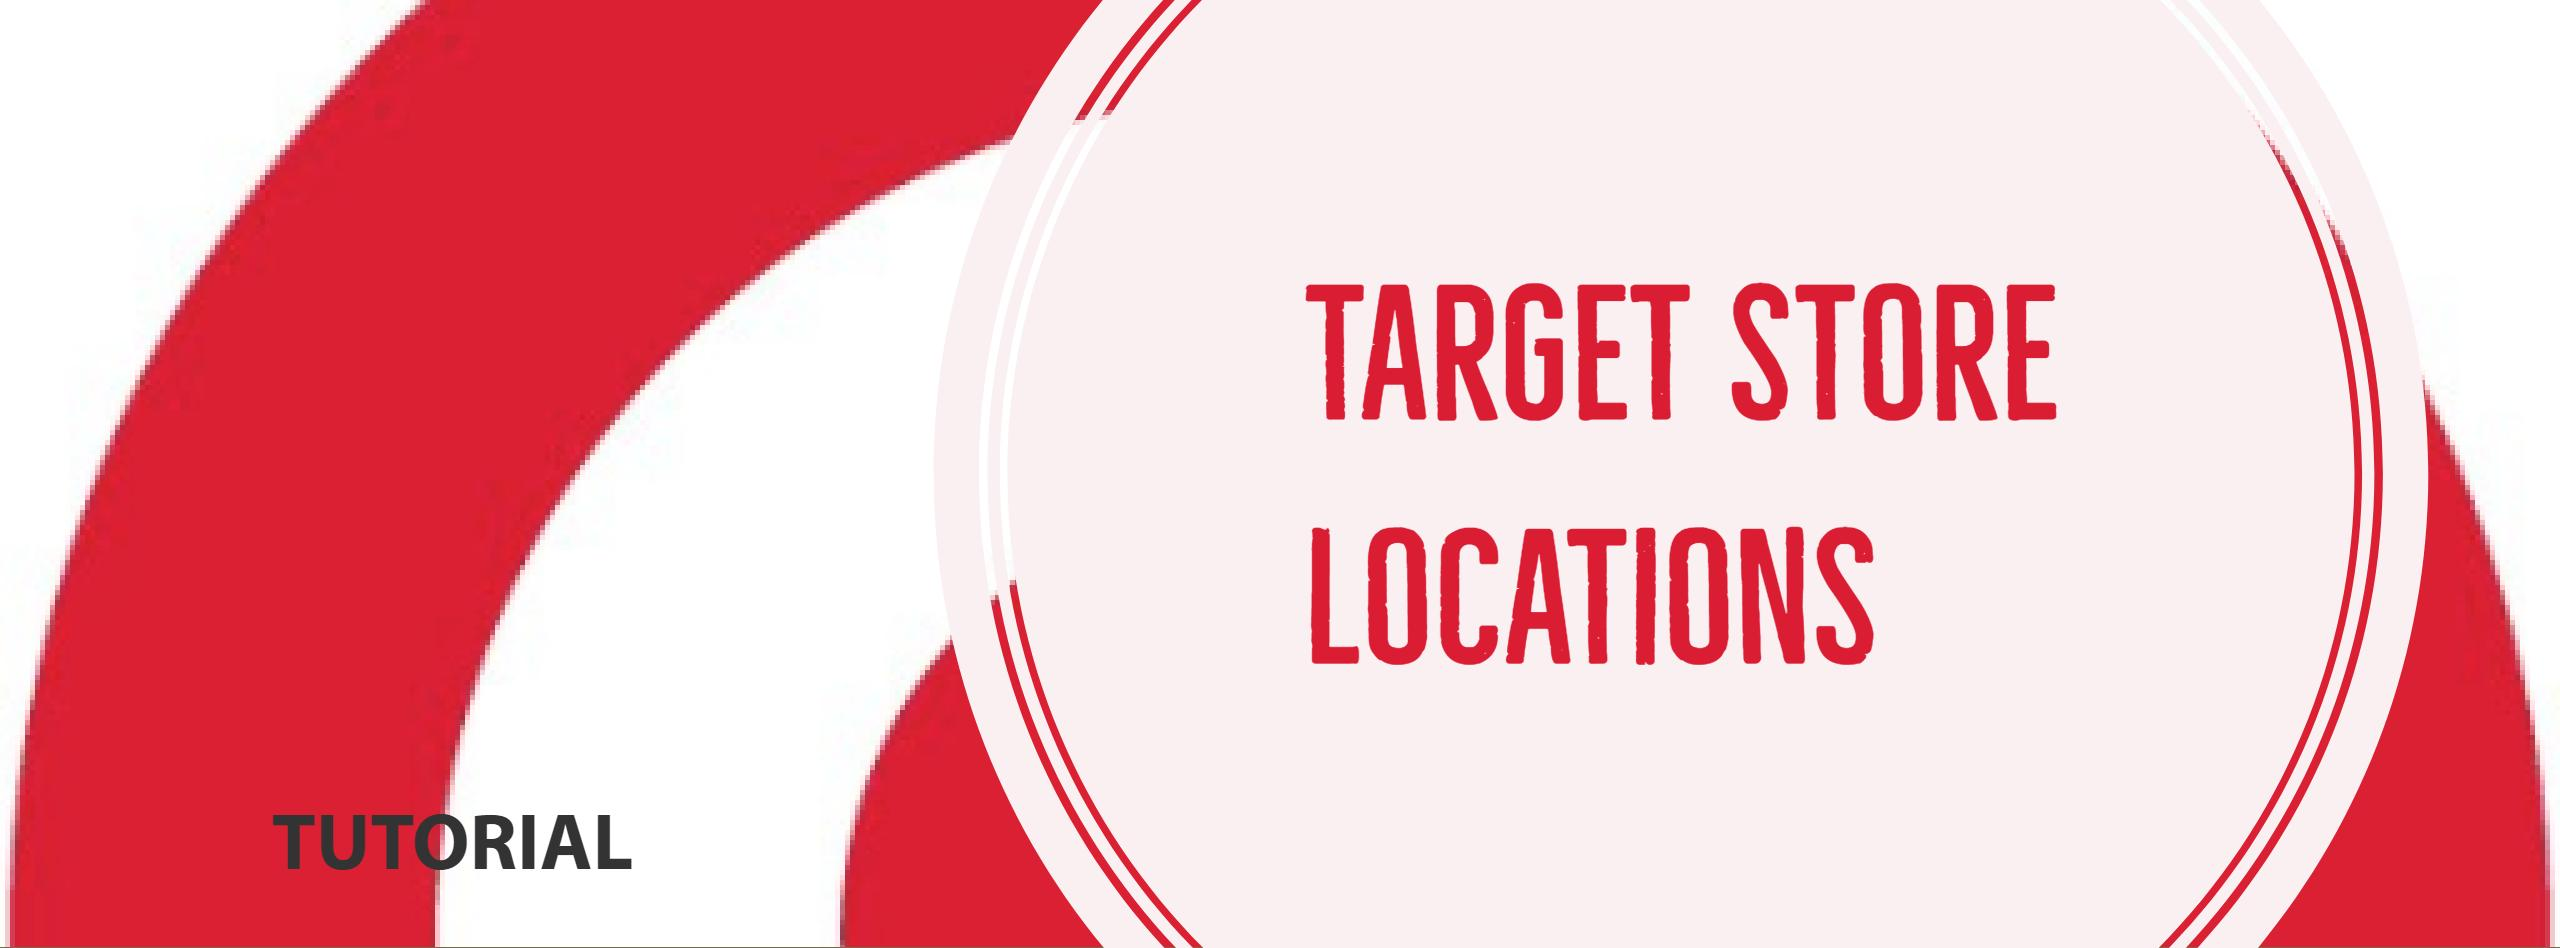 How to Scrape Store Locations from Target.com using Python